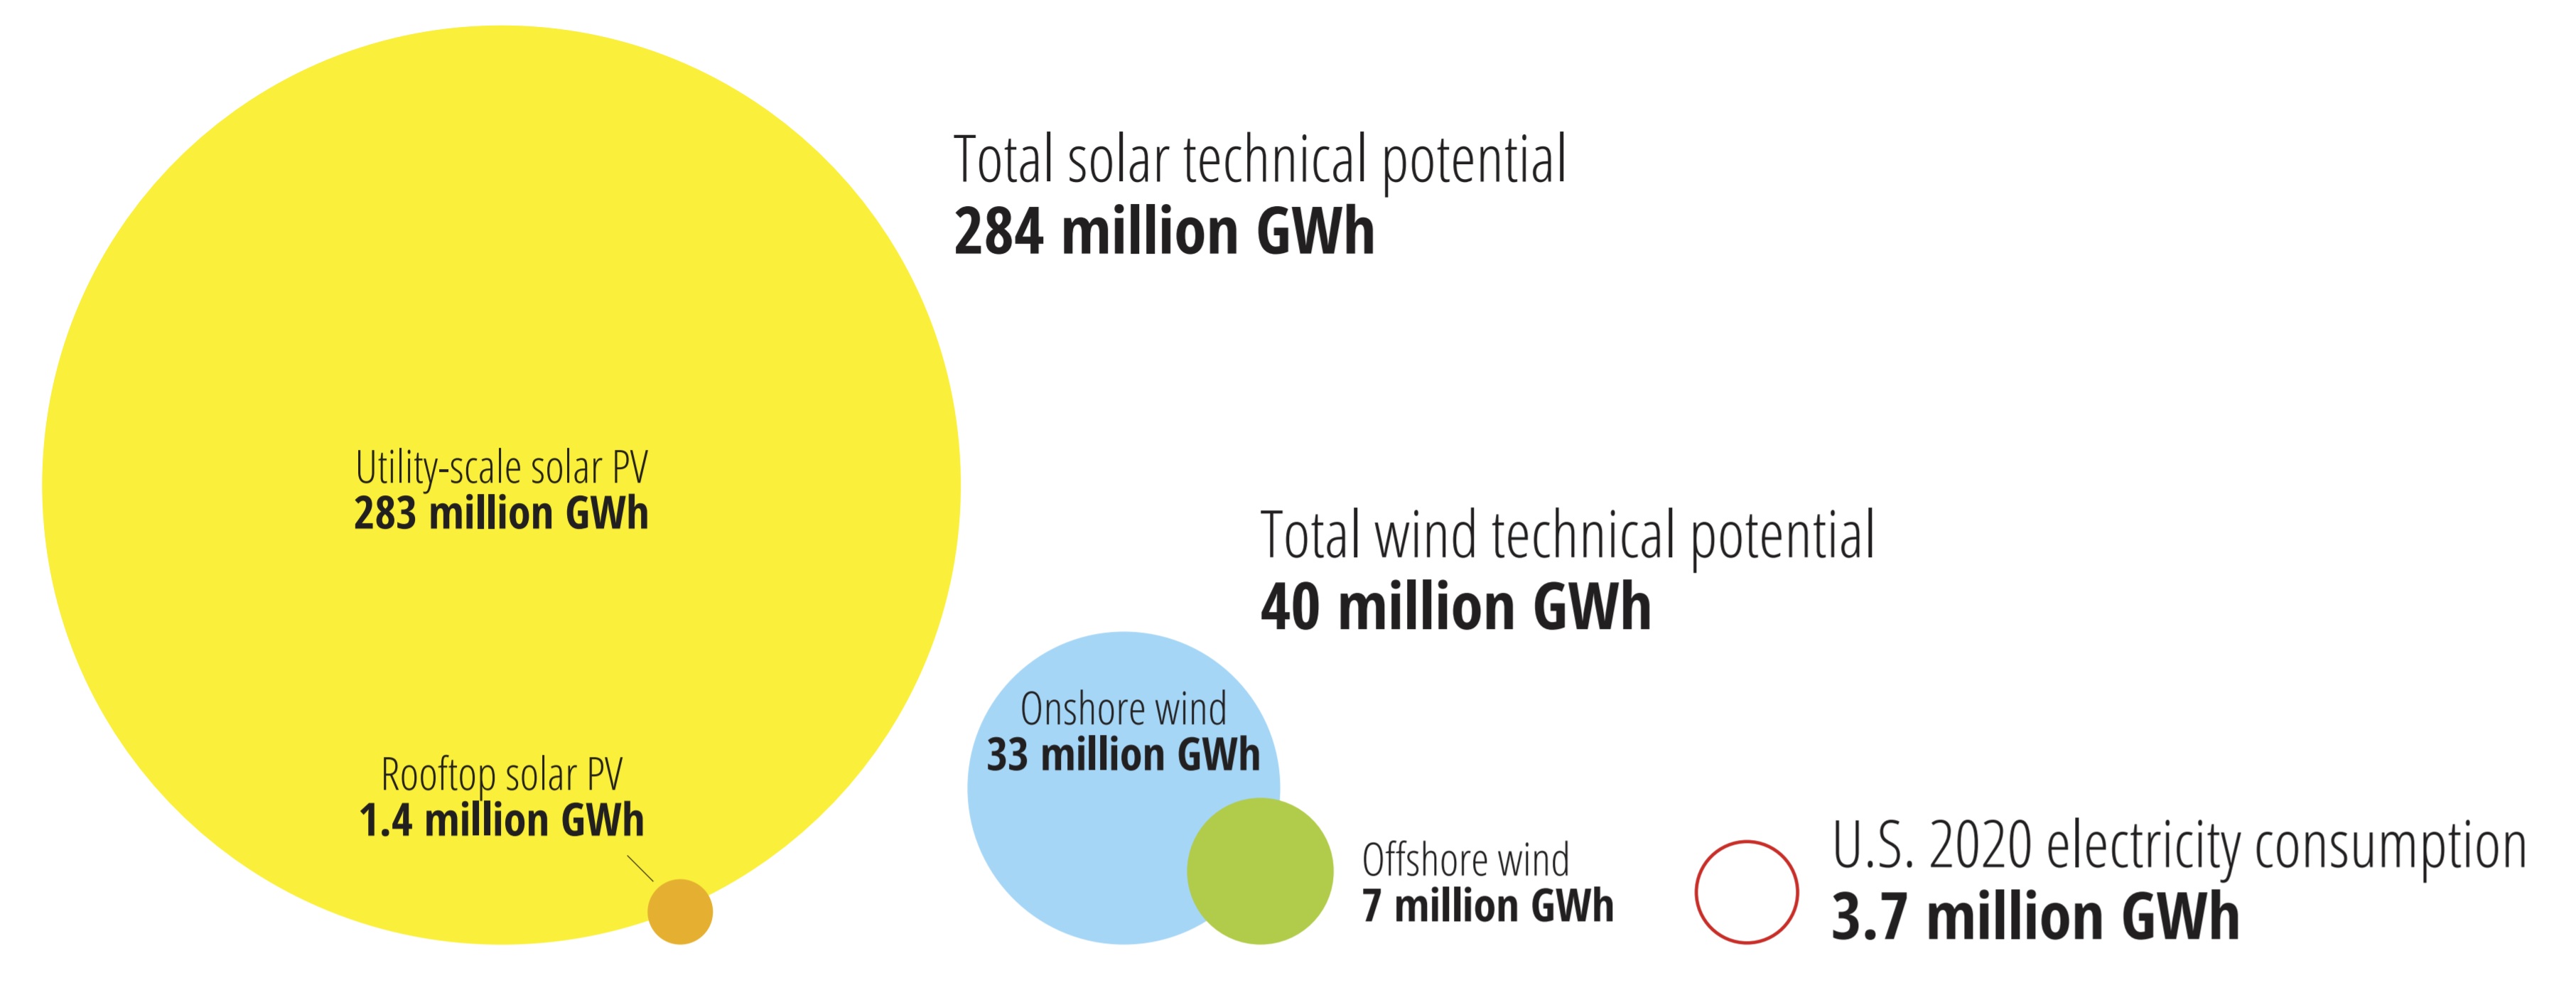 American wind and solar resources have potential to provide far more electricity than we need.